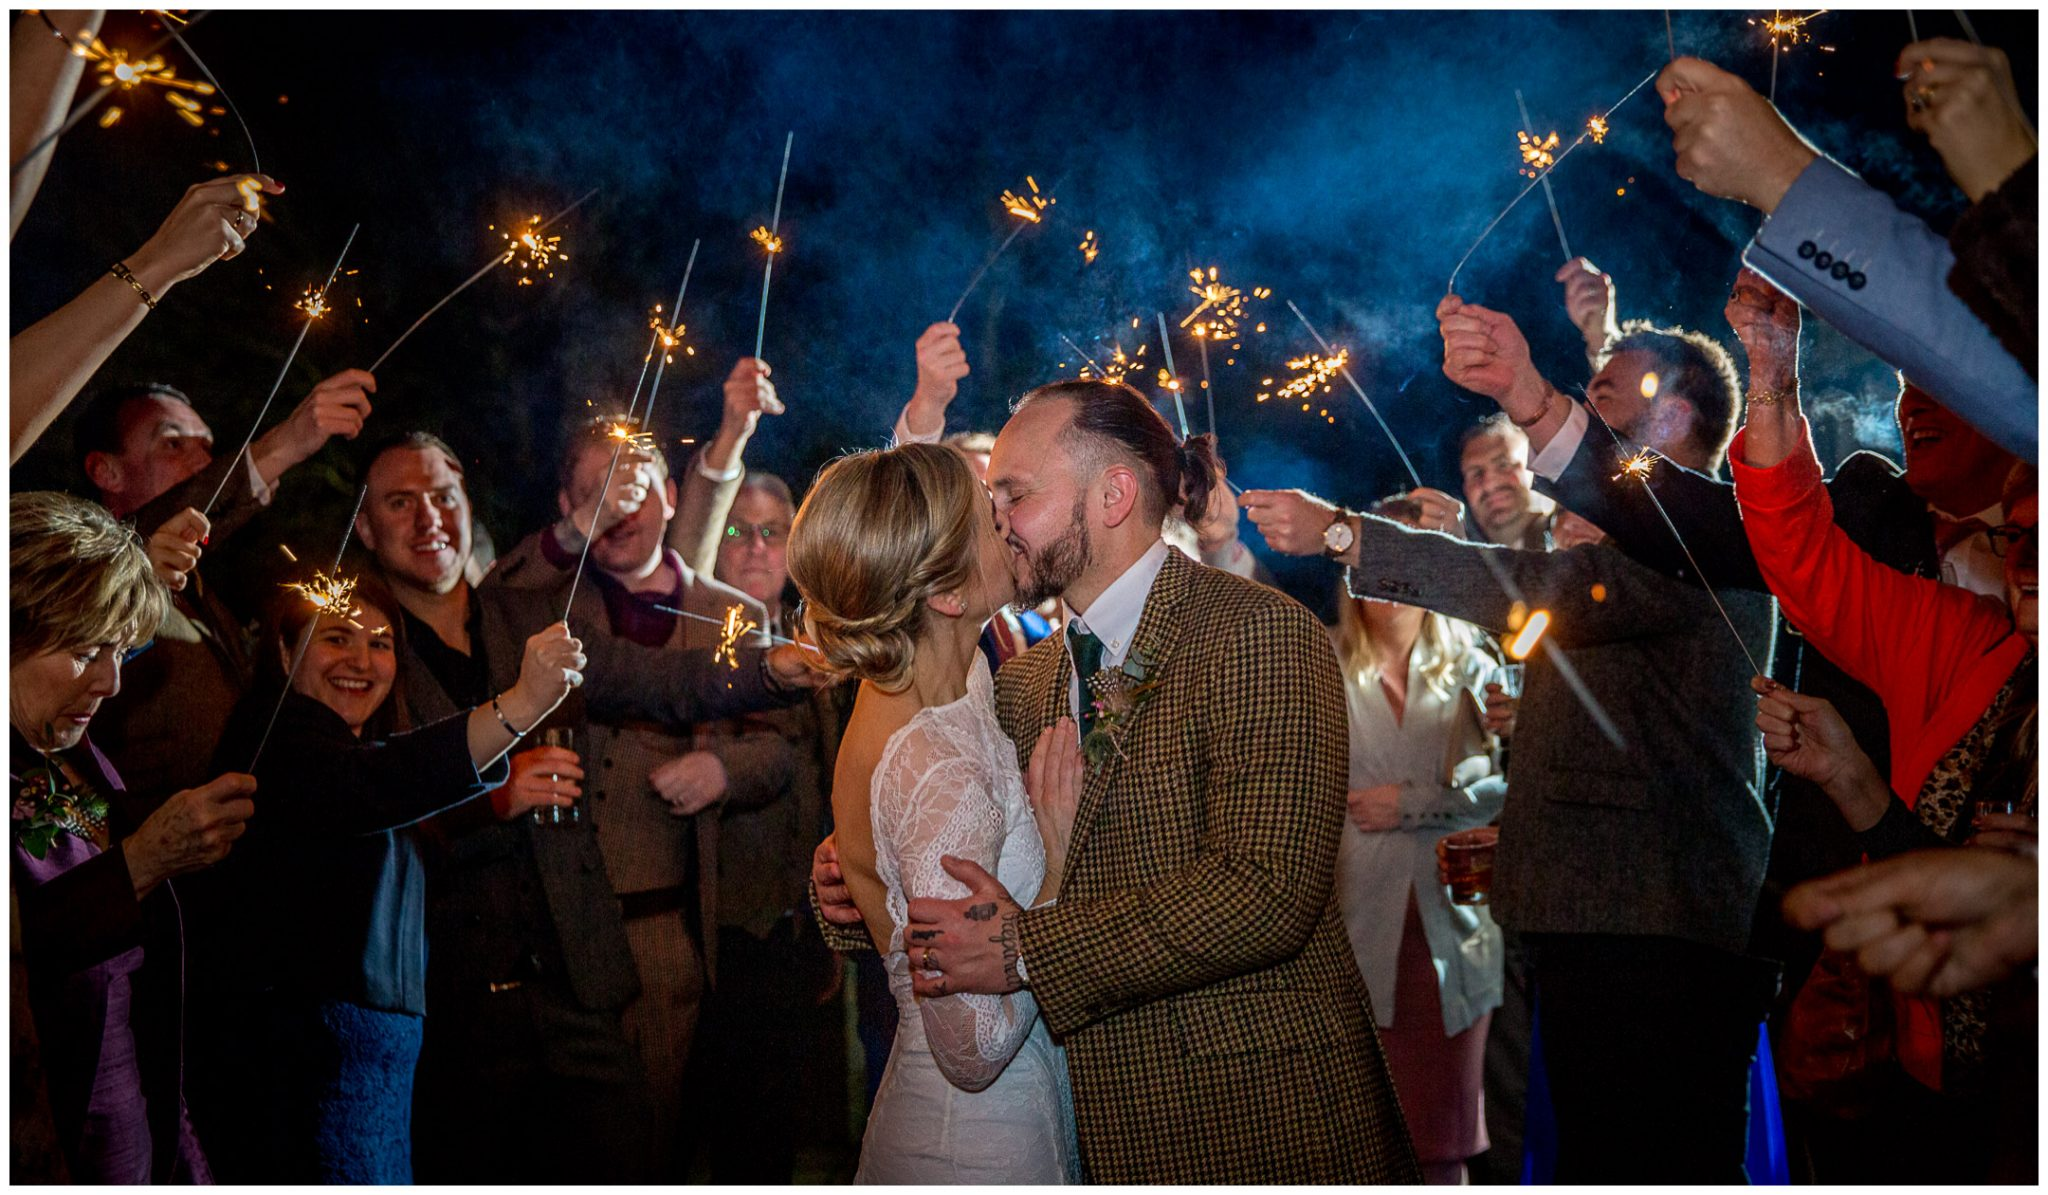 The couple kiss during a sparkler photo